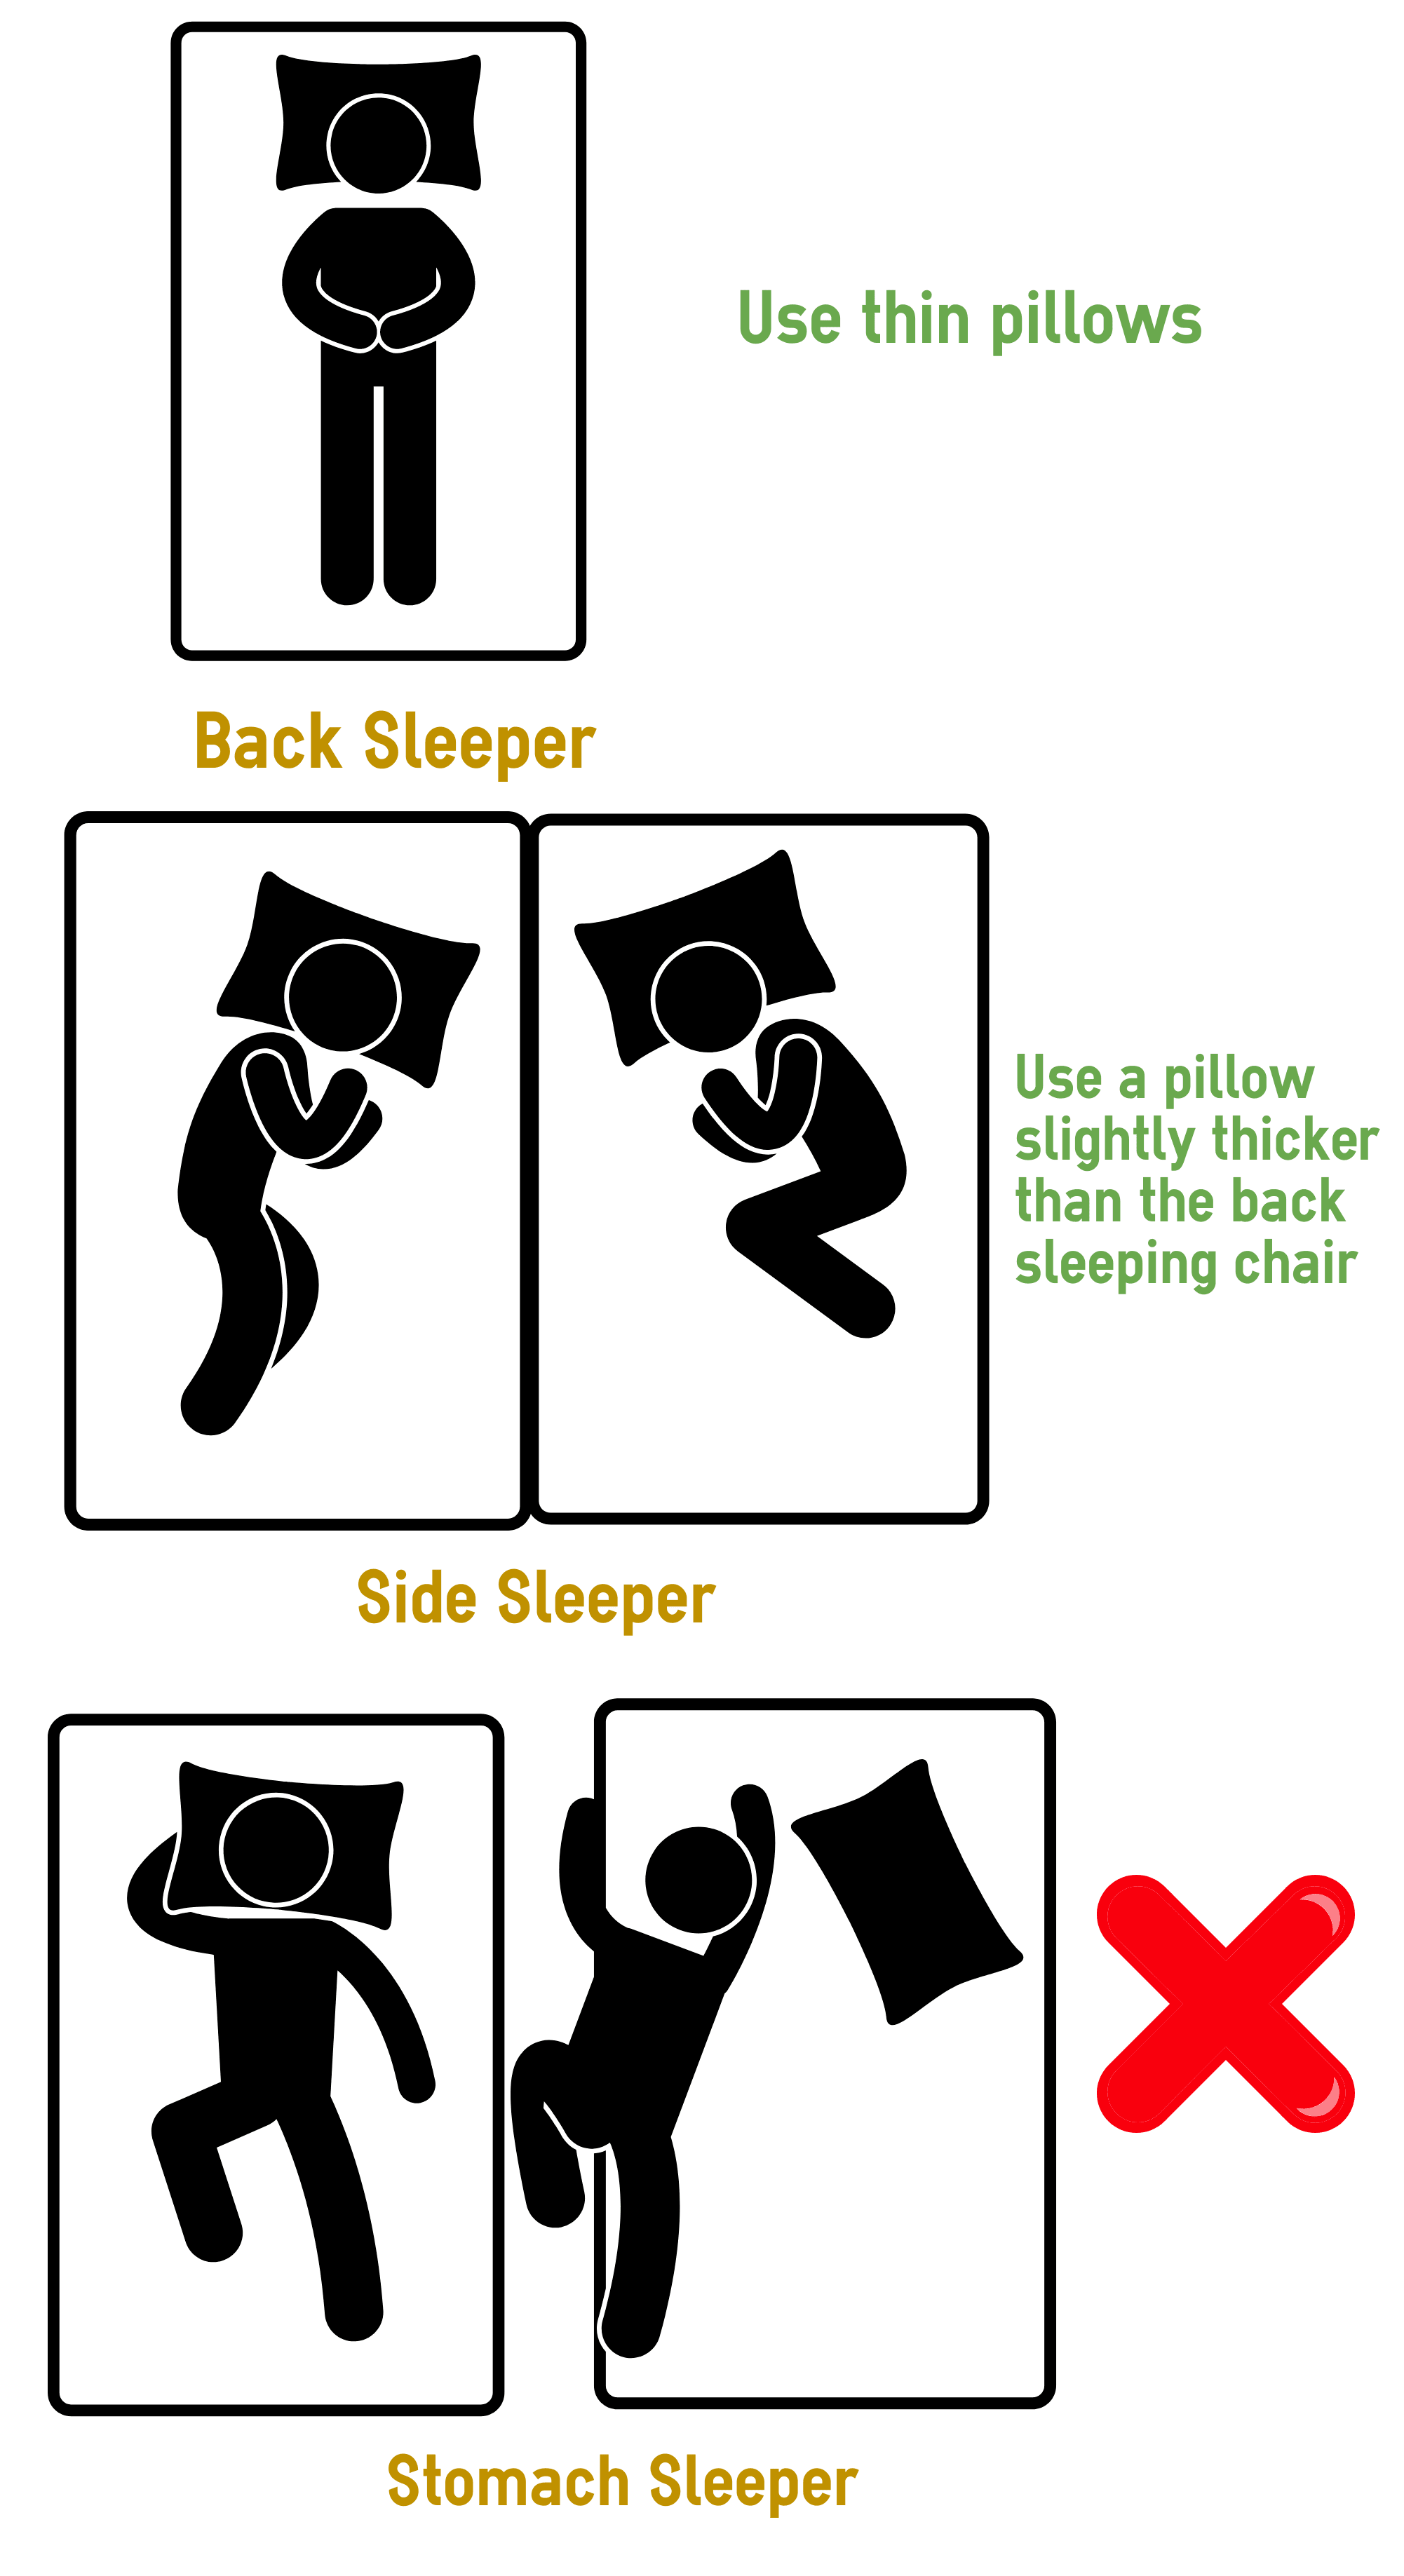 Choosing the thickness of the pillow according to your position of sleeping